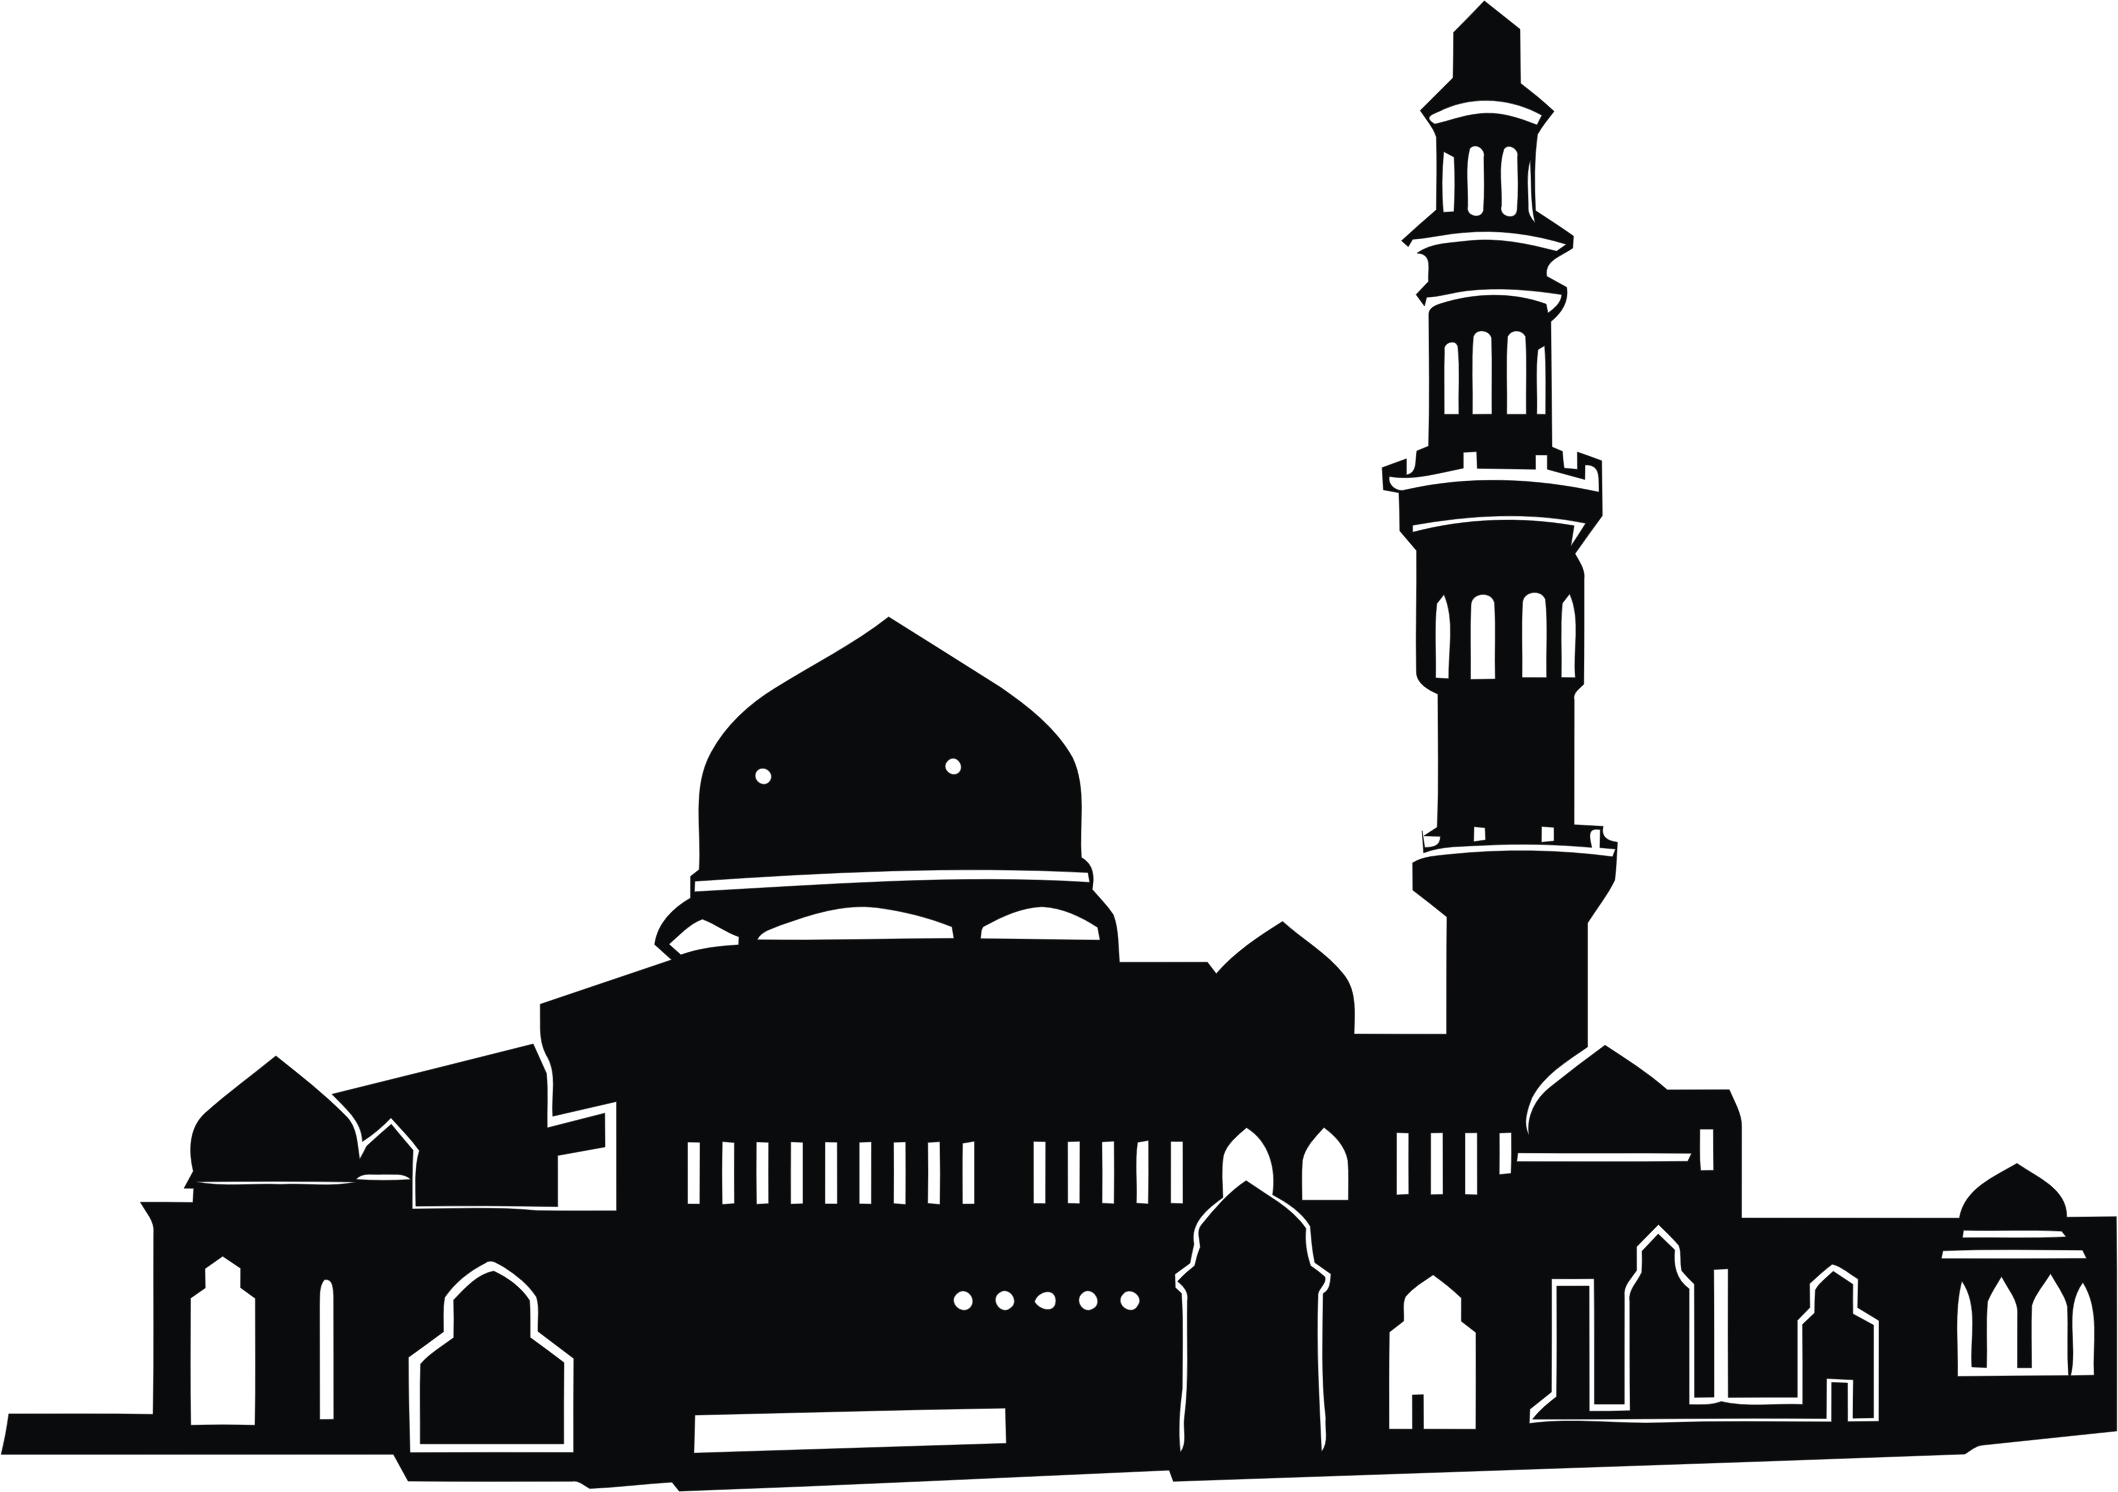 Mosque png icon #2941.